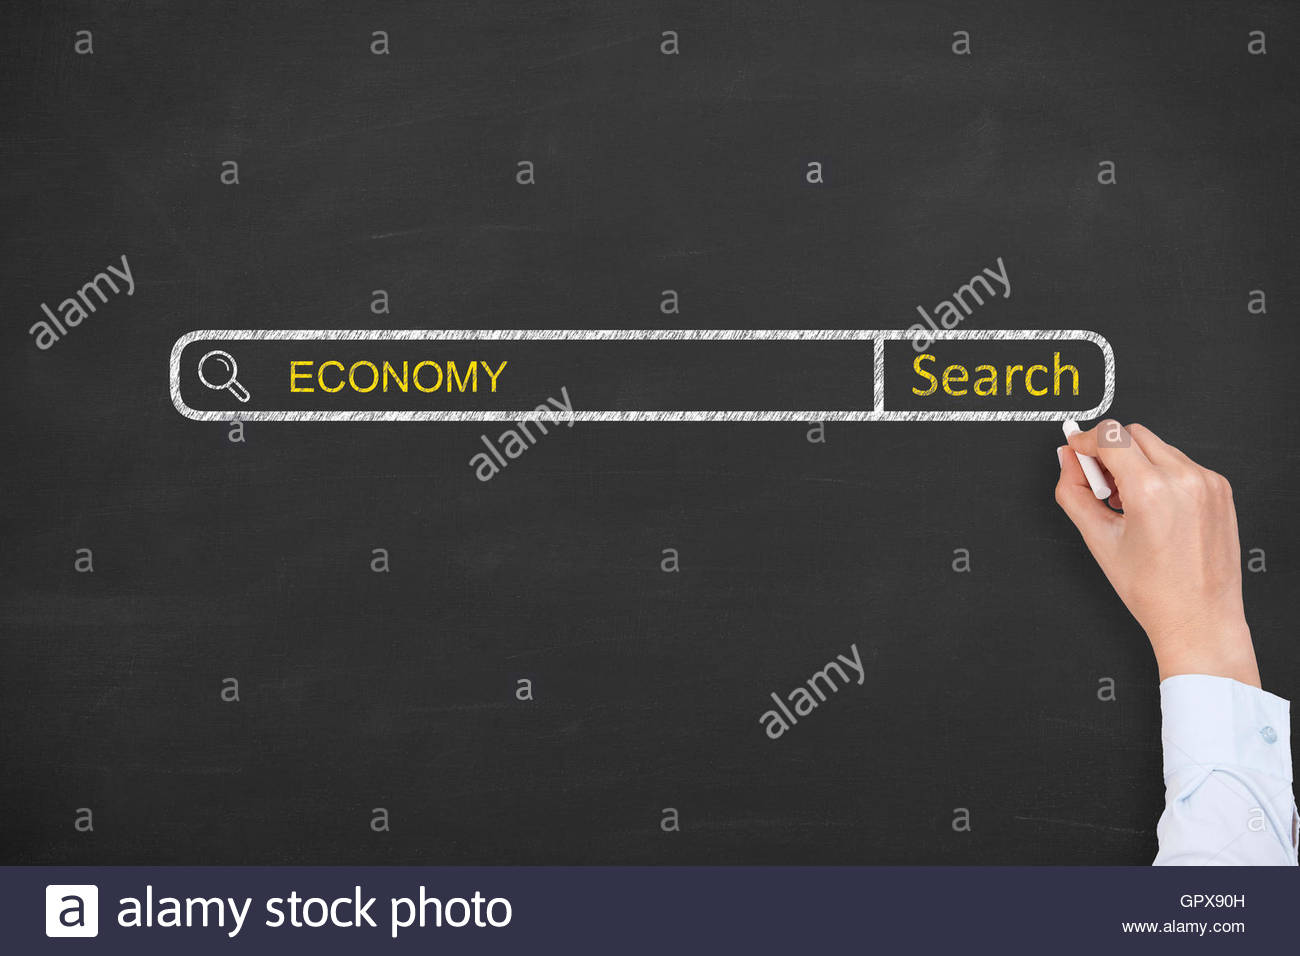 Economy Search Engine on Blackboard - Stock Image